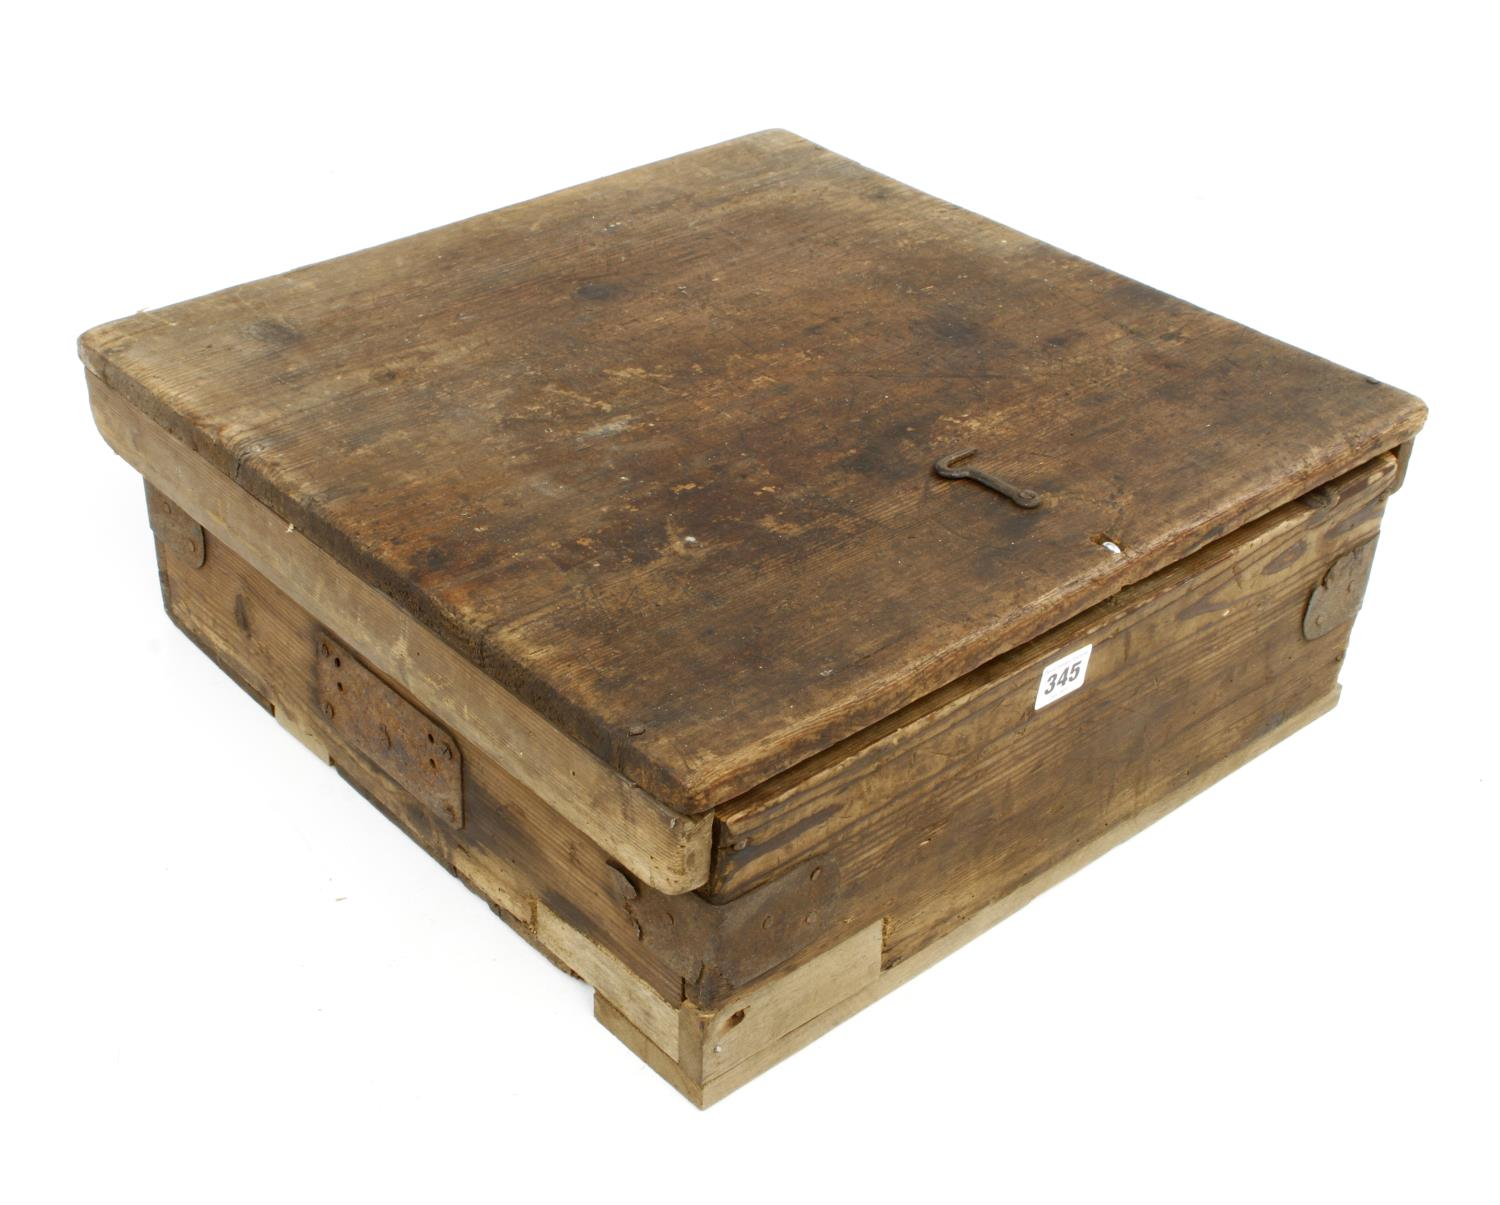 Two sets of lawn bowls in pine box with orig rules the makers label with FELTHAM & Co inside the lid - Image 3 of 3